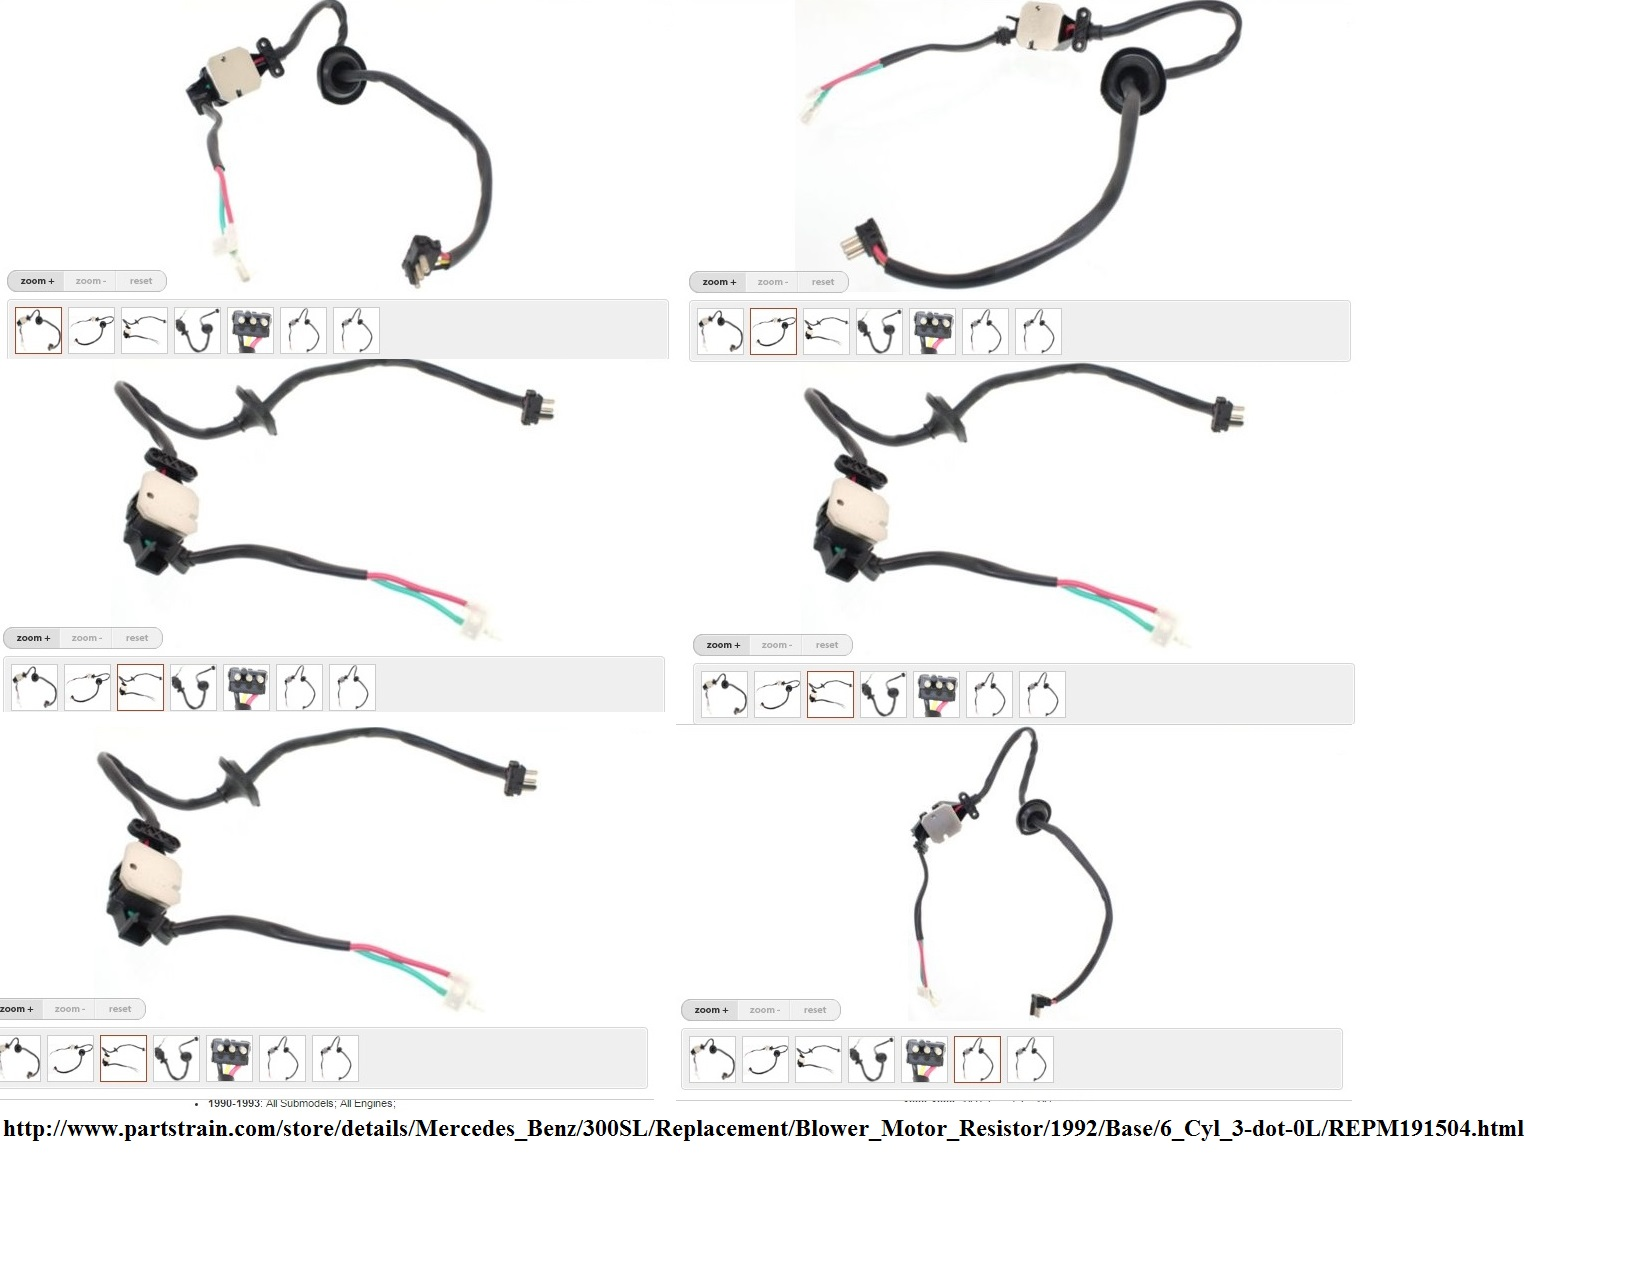 Anybody Tried Out The Replacement Blower Motor Resistor